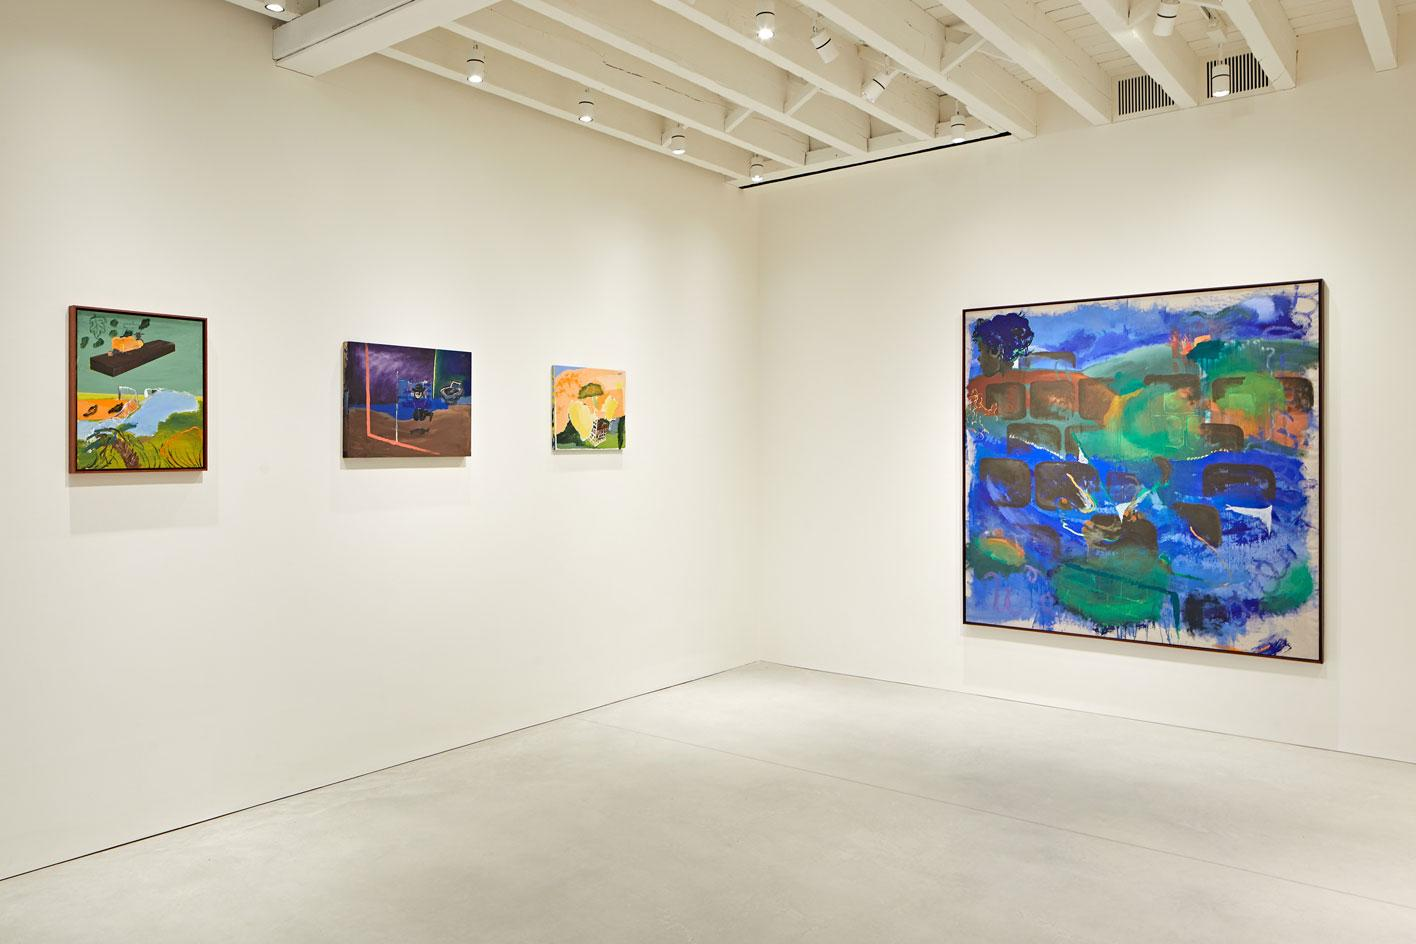 Installation view of artist Walter Price's work in'Citizens of Memory' atThe Perimeter, London.